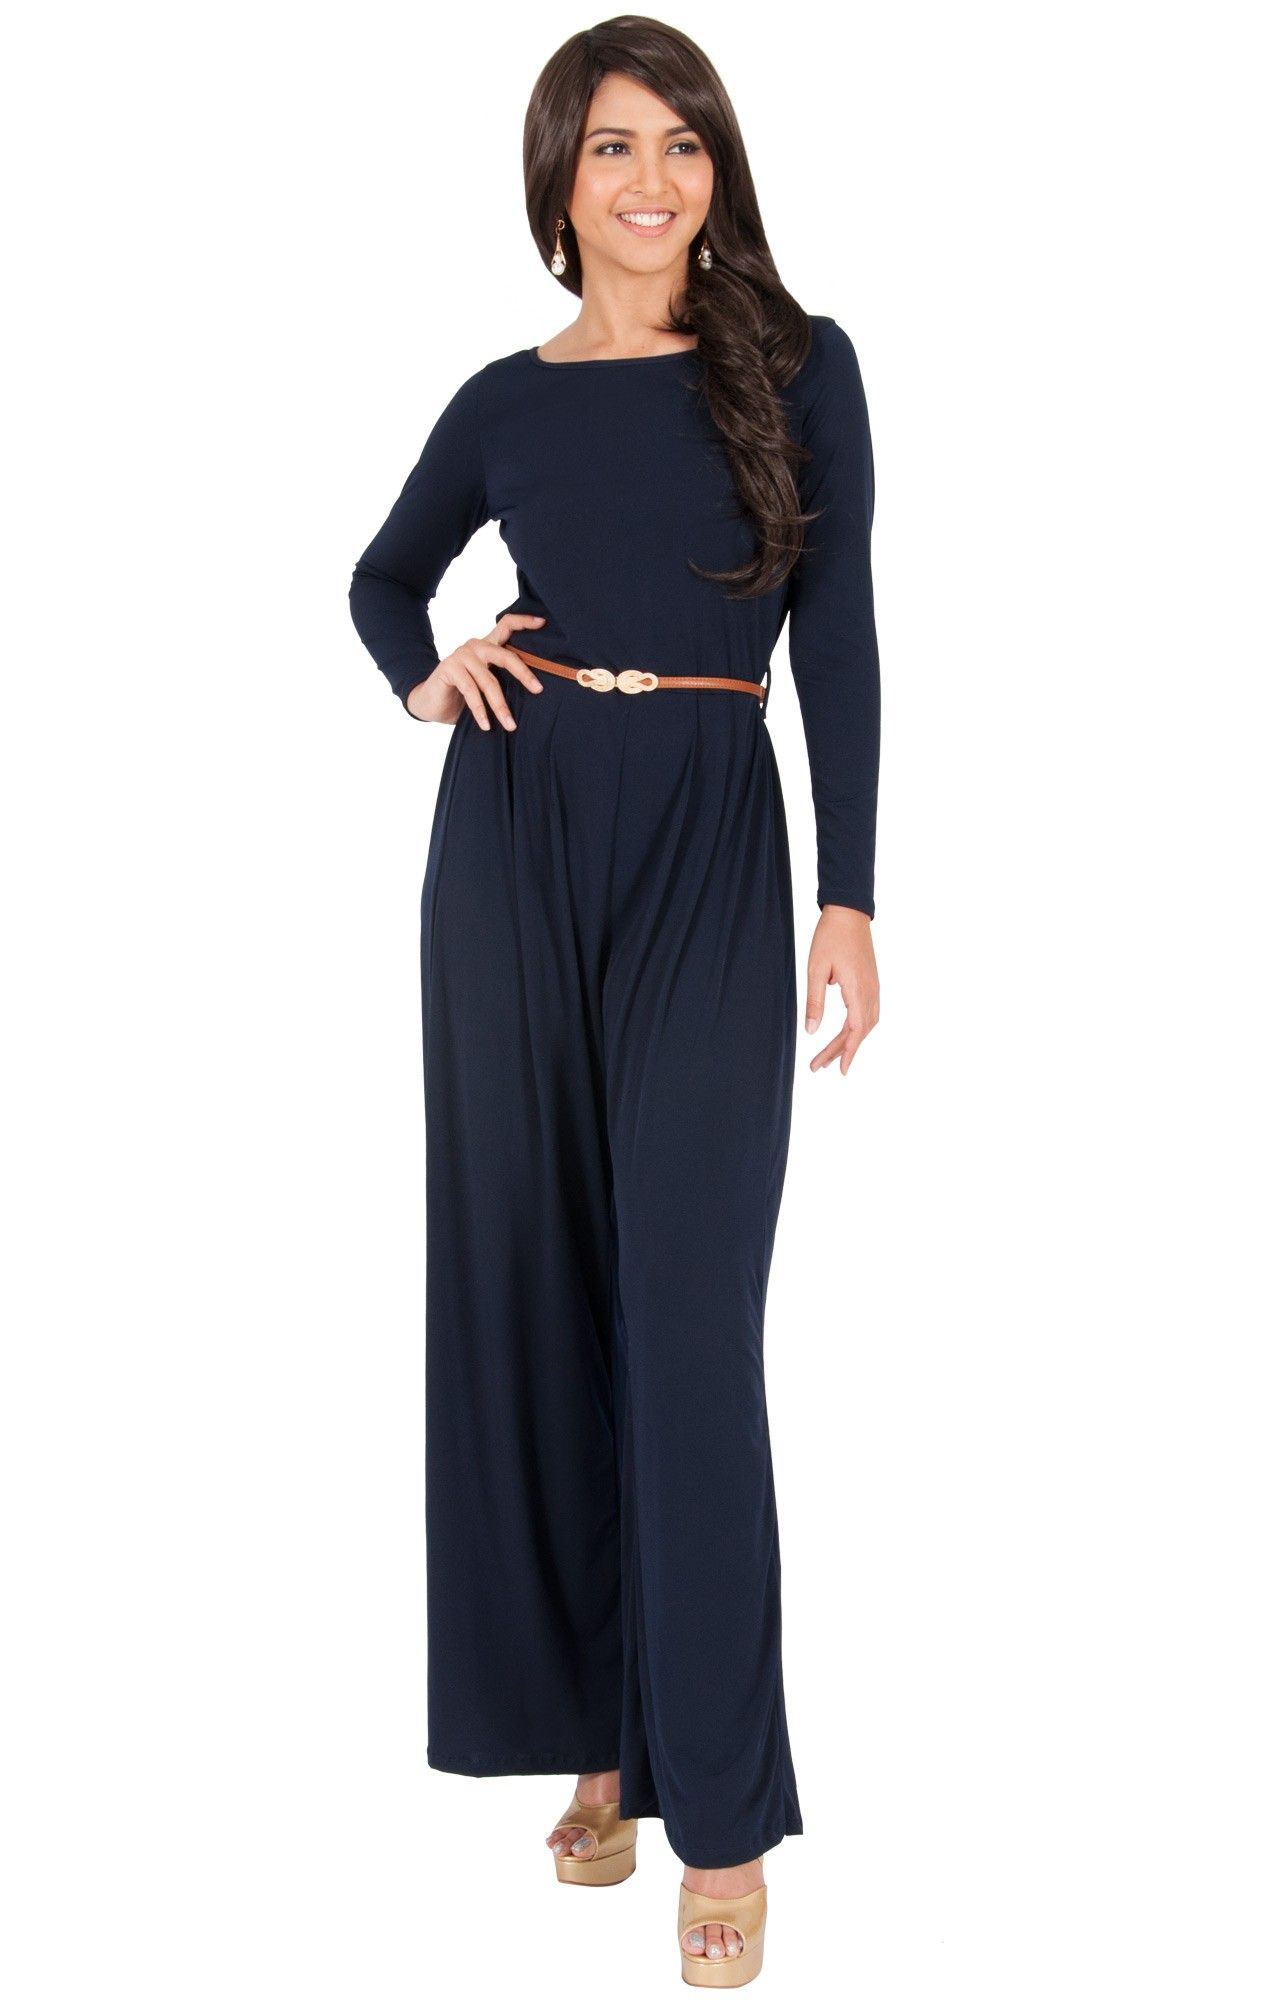 75643e3b4a8c SOPHIA - Long Sleeve Flare Bell Bottom Pants Wide-Leg Jumpsuit Romper